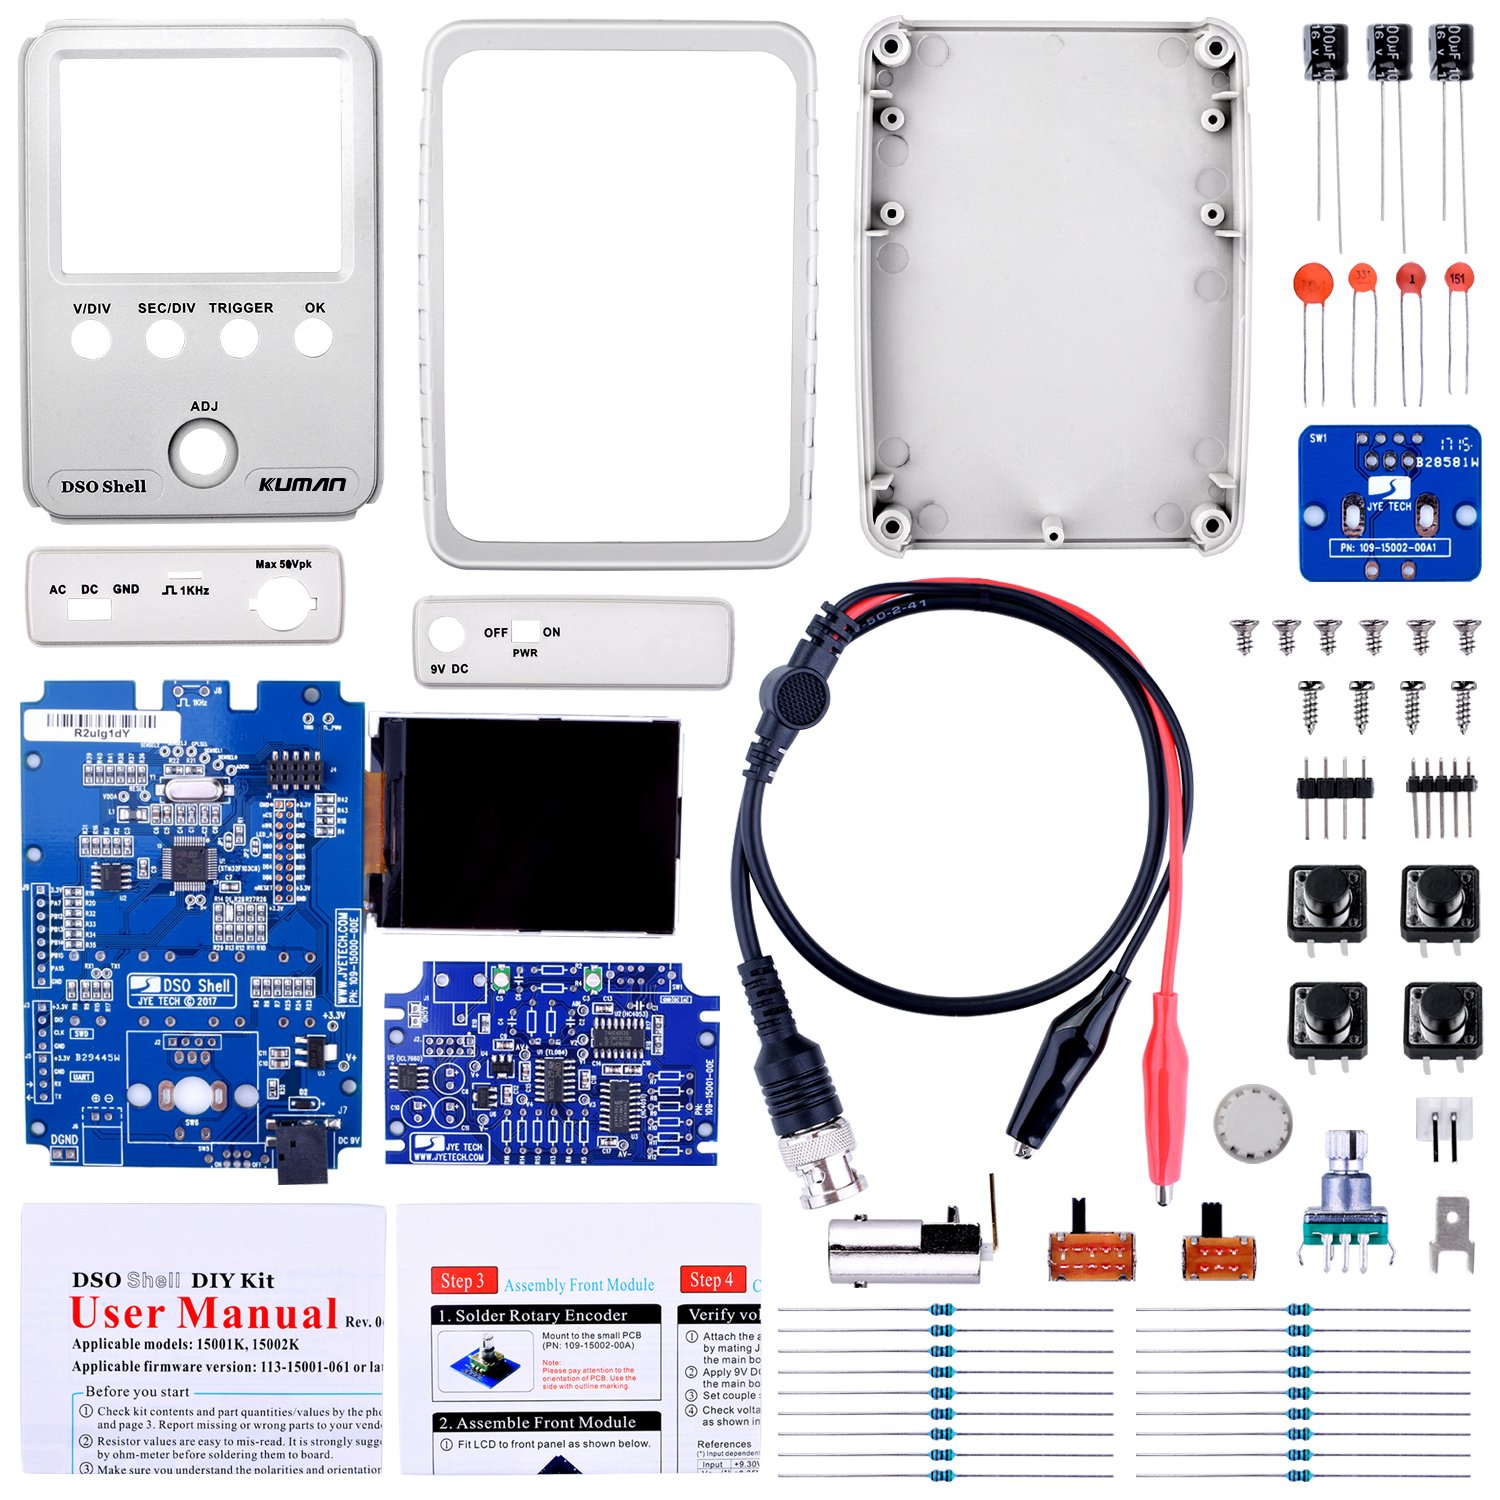 Kuman Oscilloscope Shell DSO JYE, DIY, Kit avec Source Open, 2.4 Pouces Couleurs TFT LCD + Shell + Parties DYI + Sonde 15001K (SMD pre-soude)